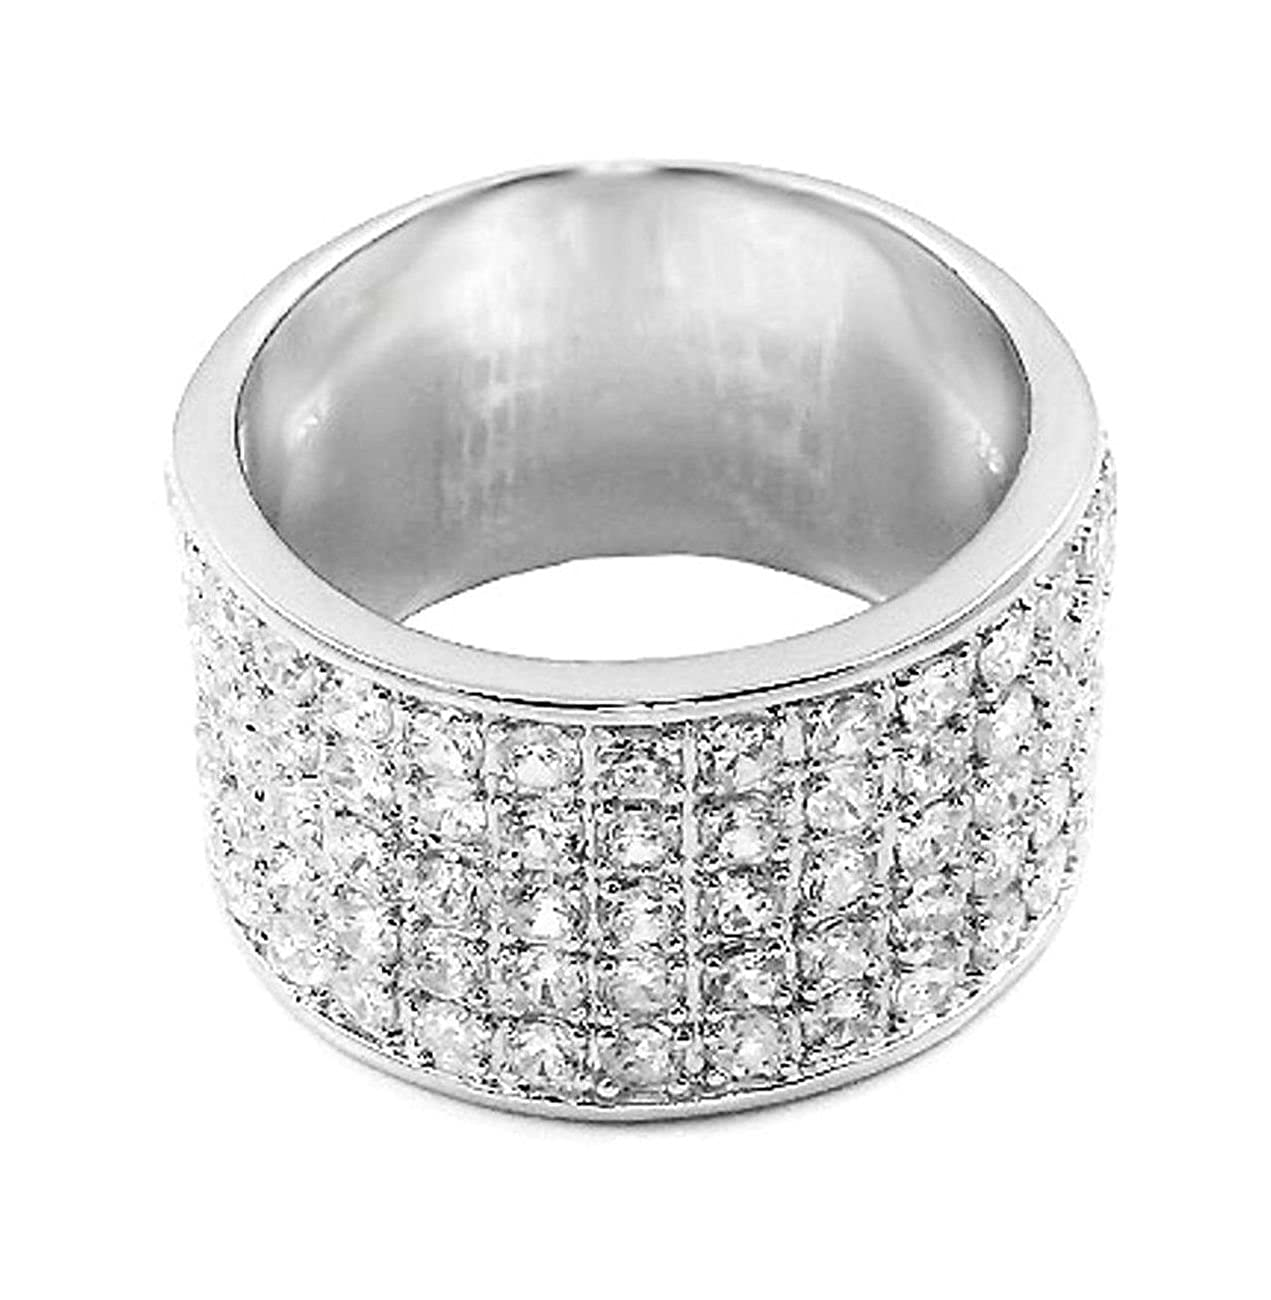 15 mm Wide mens ring designer Round cut Solid 925 Silver